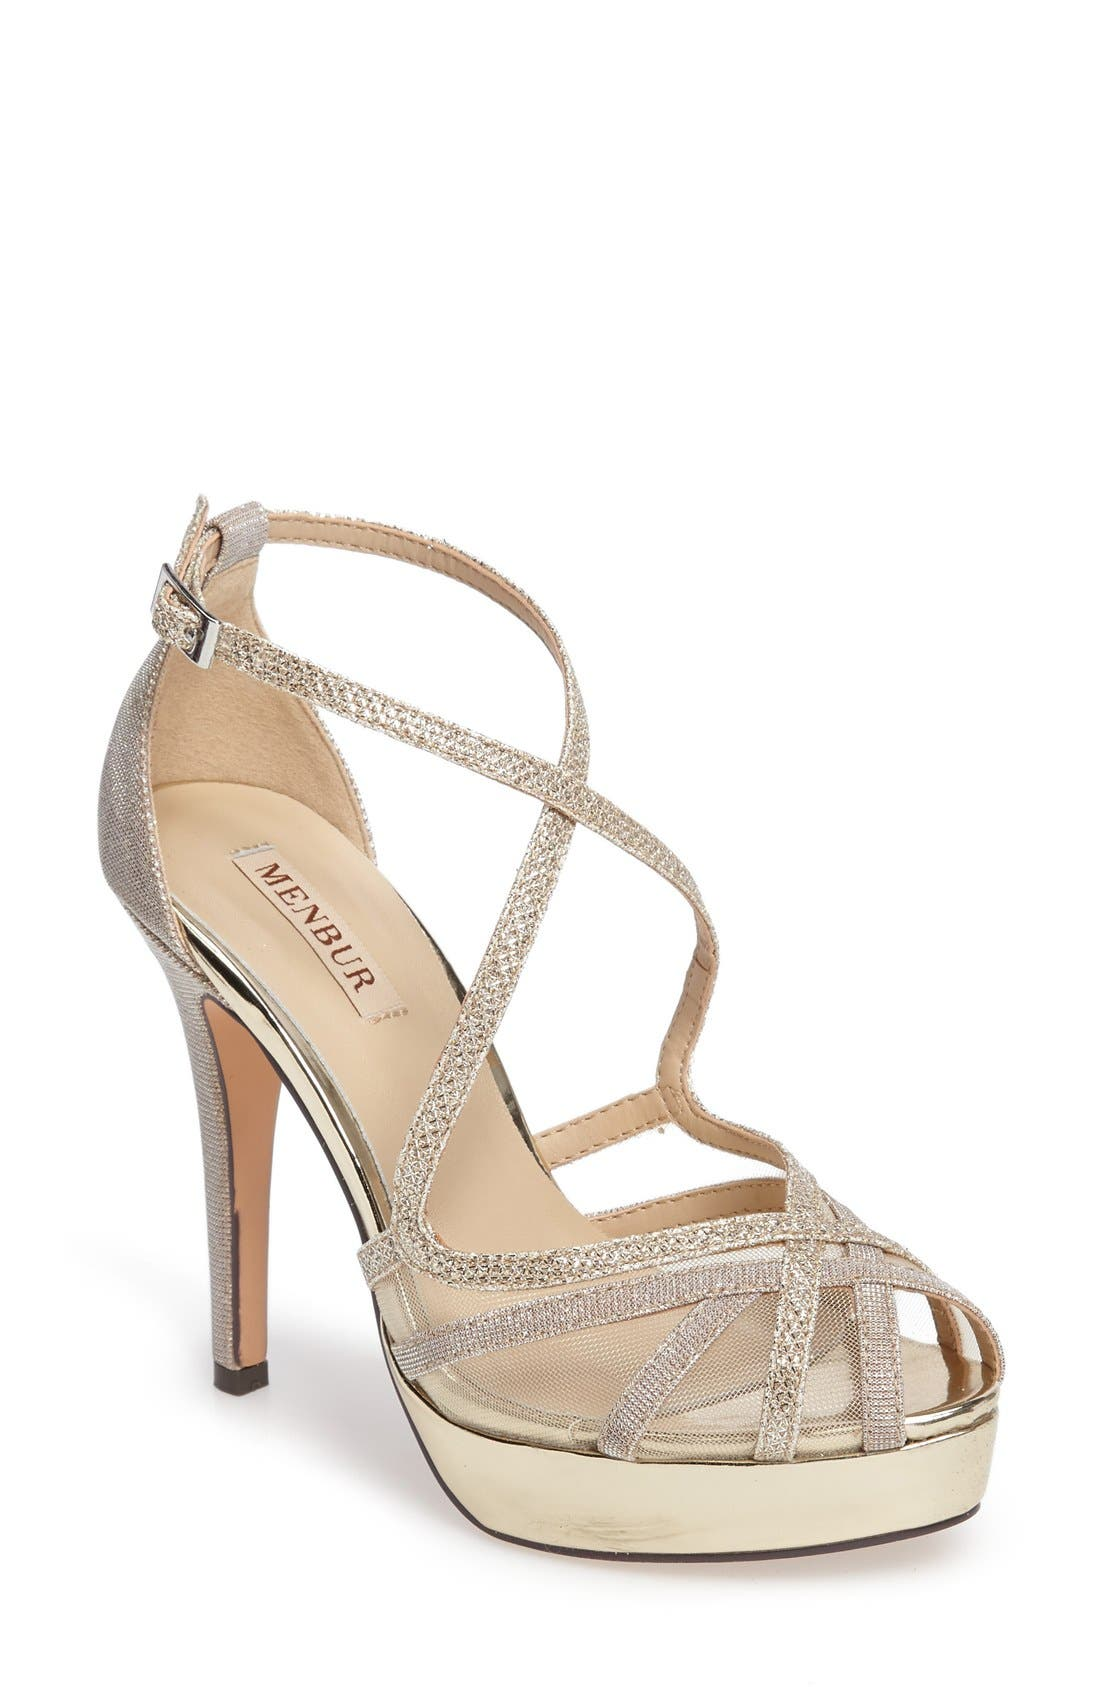 Menbur Rosa Platform Evening Sandal (Women)